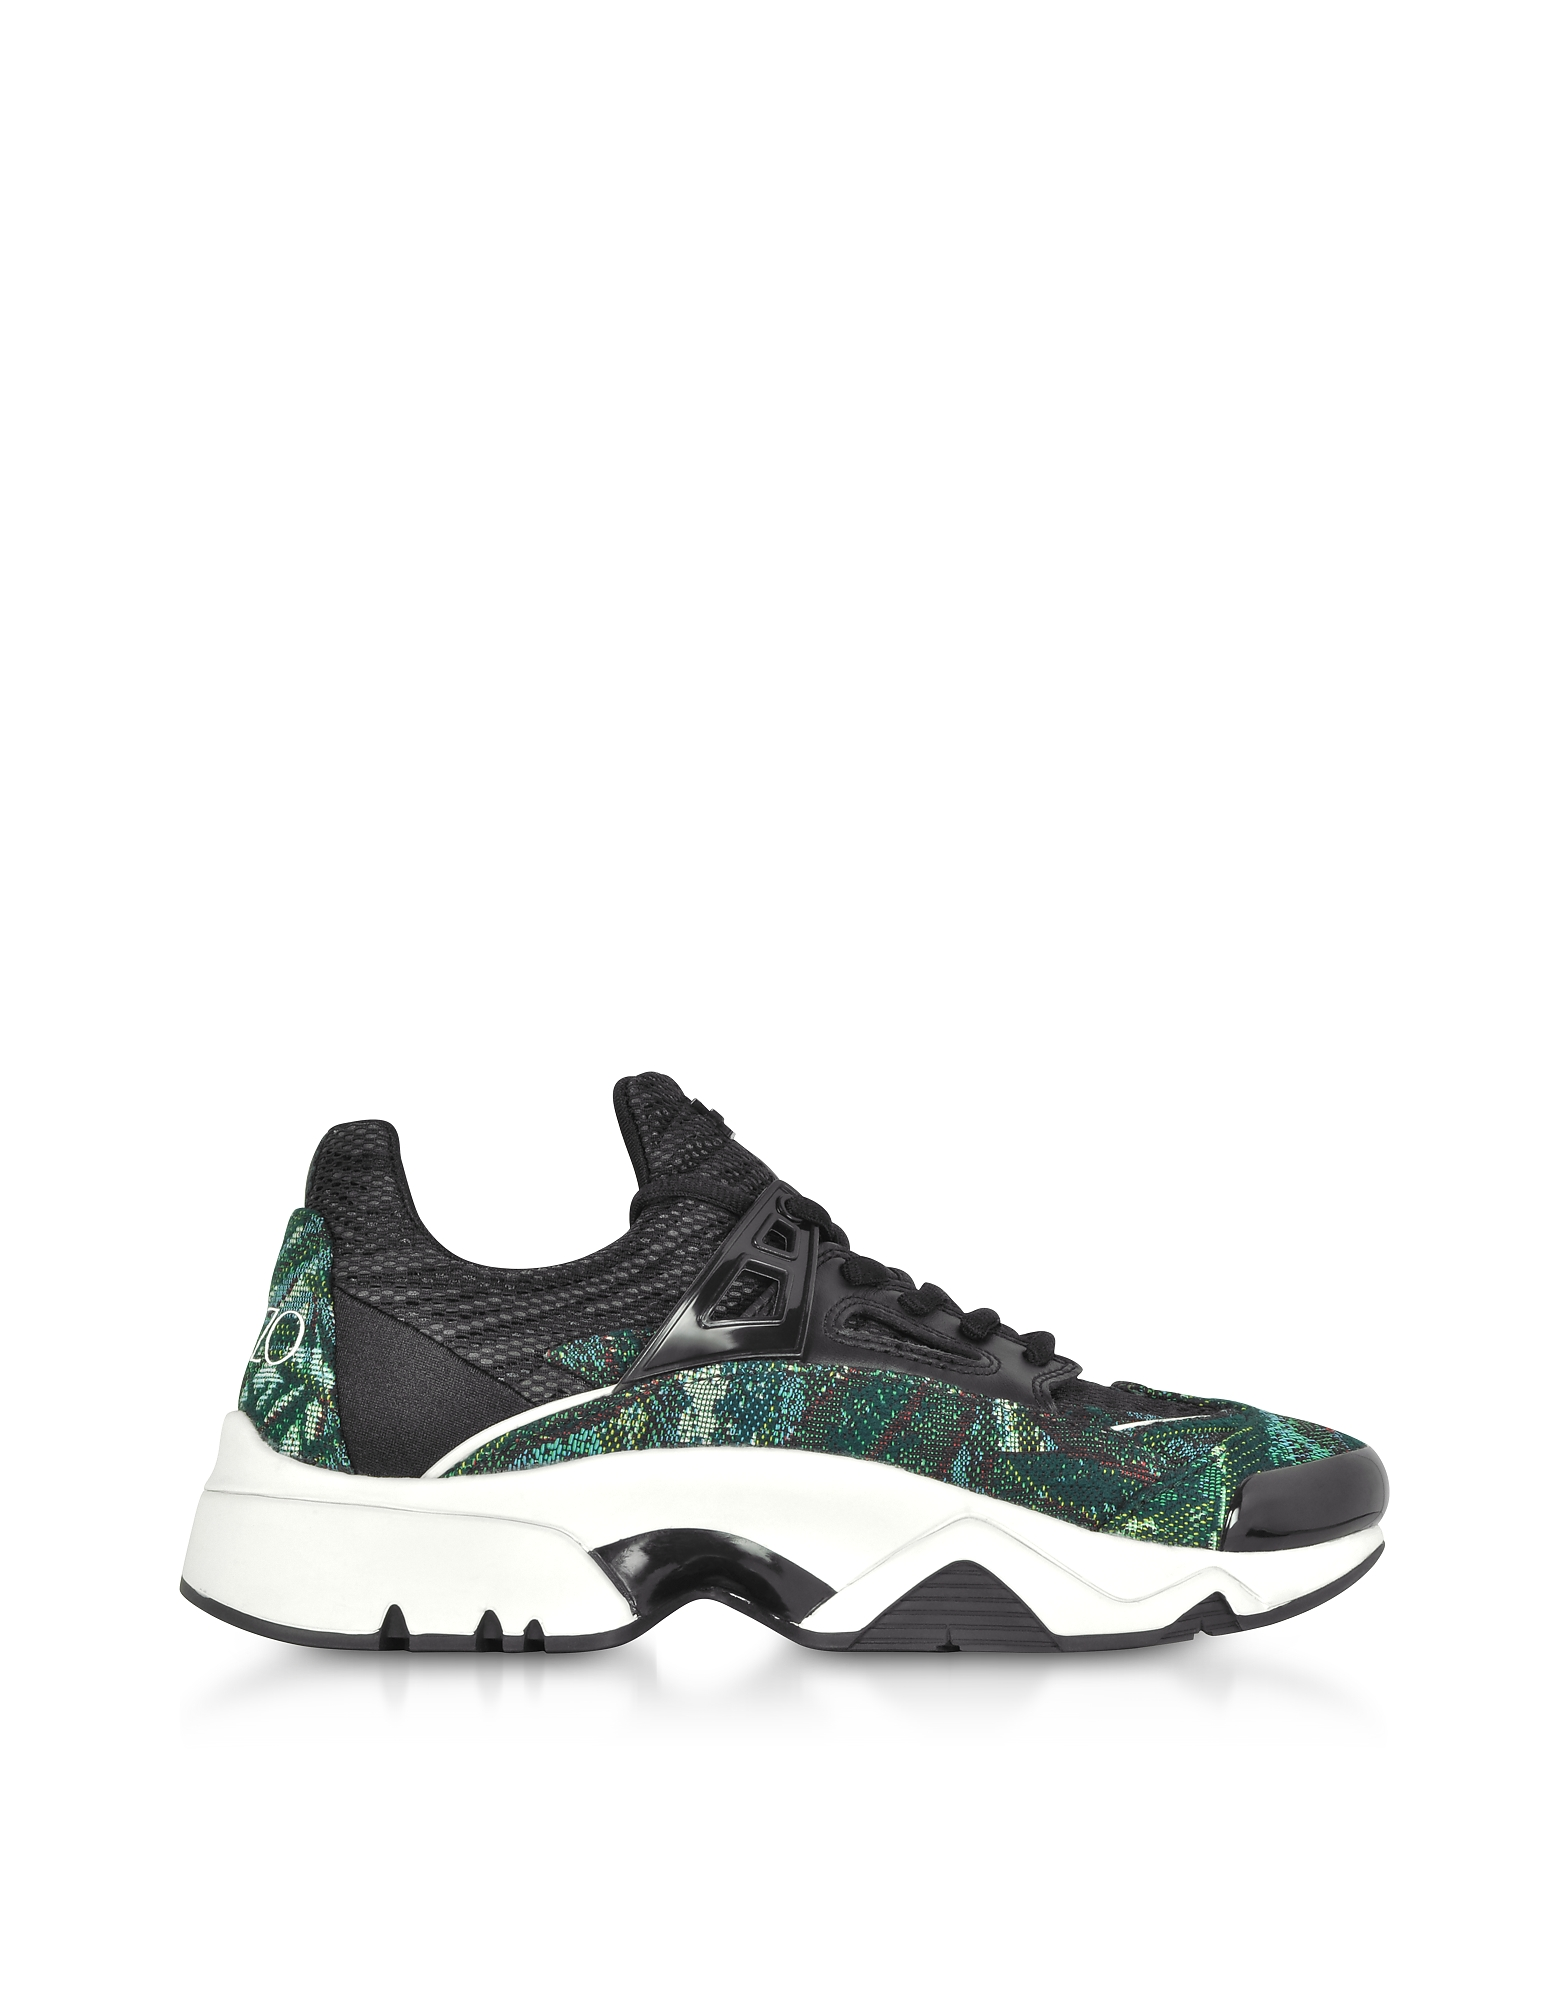 Kenzo Shoes, Tapestry Jacquard Sonic Sneakers